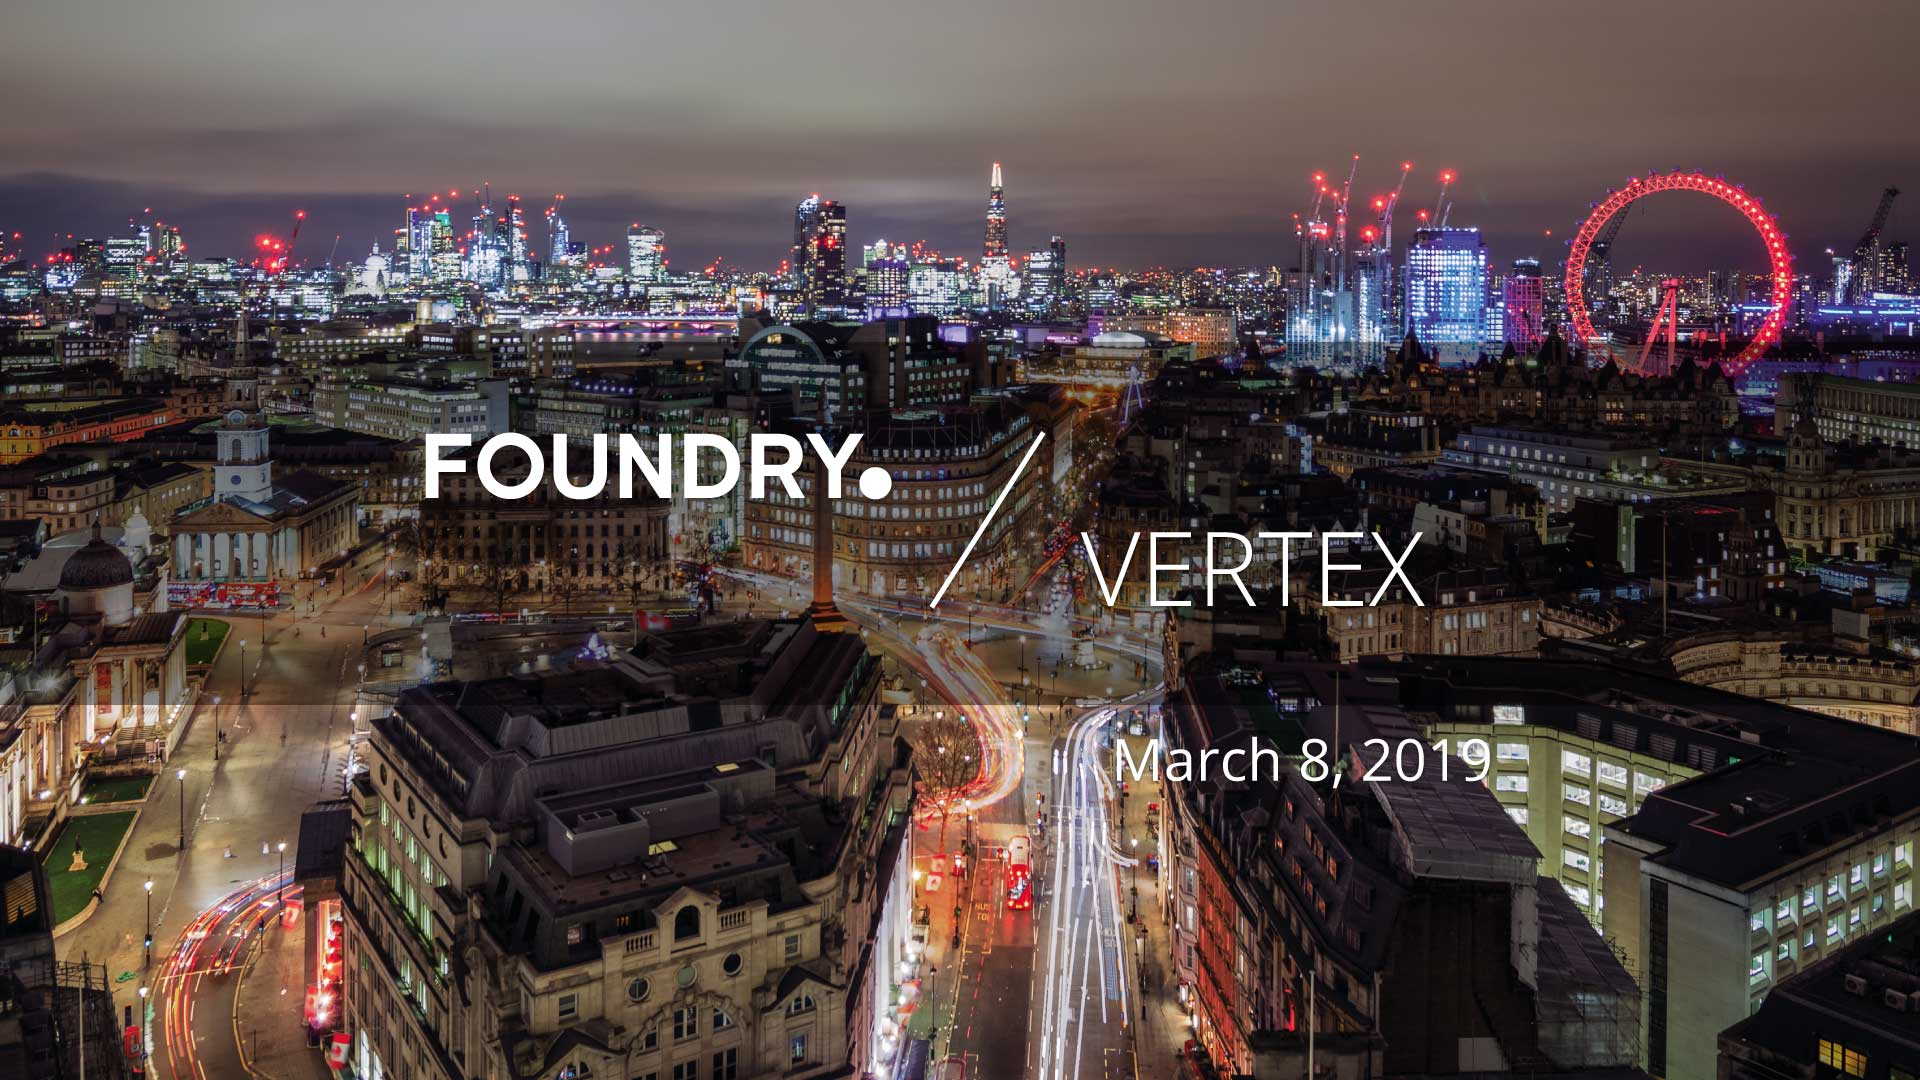 Vertex and Foundry event